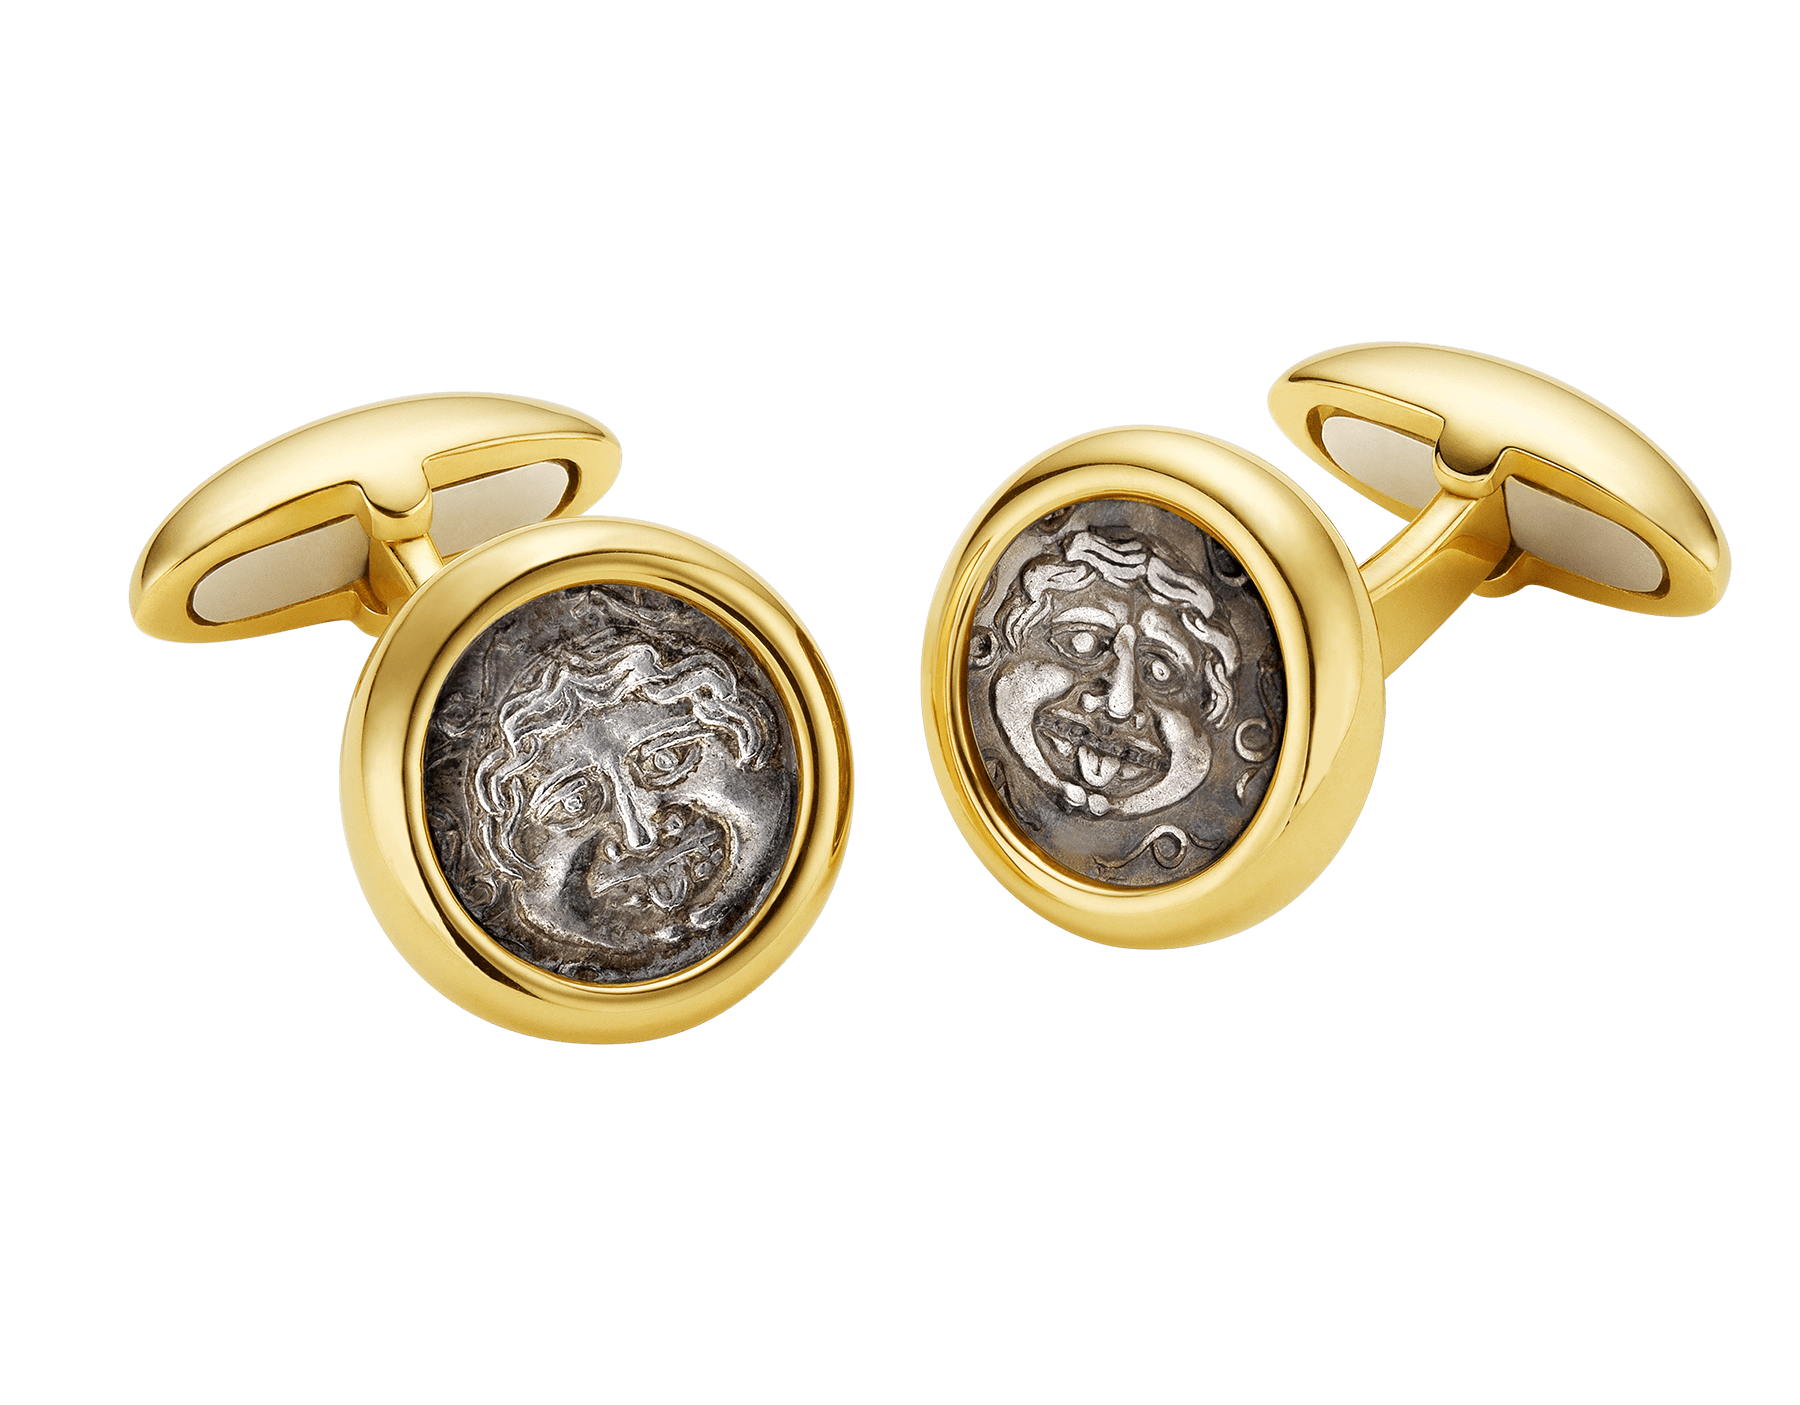 Monete 18 kt yellow gold cufflinks set with antique coins 309385 image 1